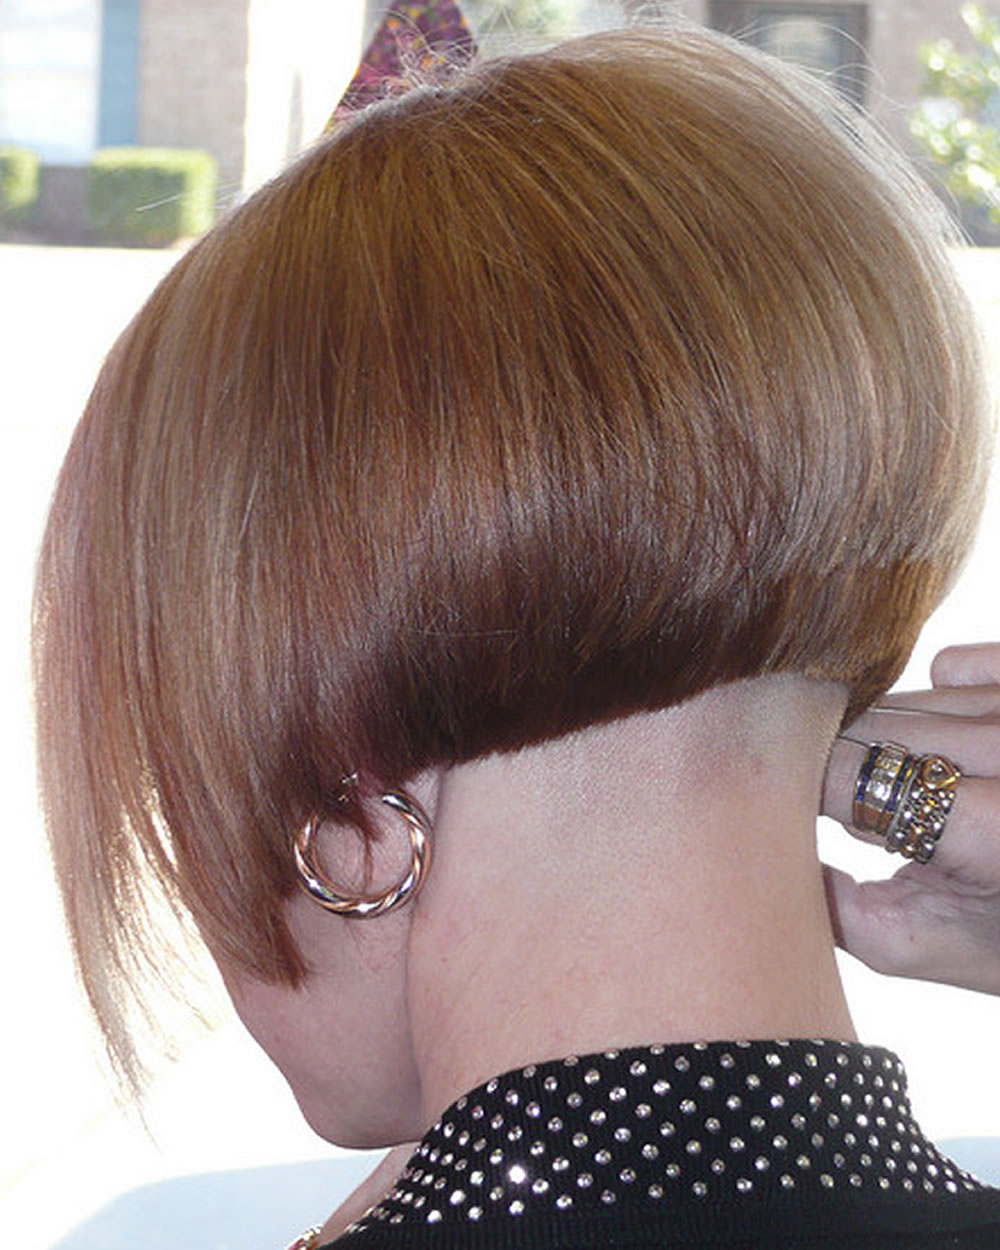 Extreme Nape Shaving Bob Haircuts & Hairstyles For Women – Hairstyles Throughout Pixie Bob Hairstyles With Nape Undercut (Gallery 19 of 20)